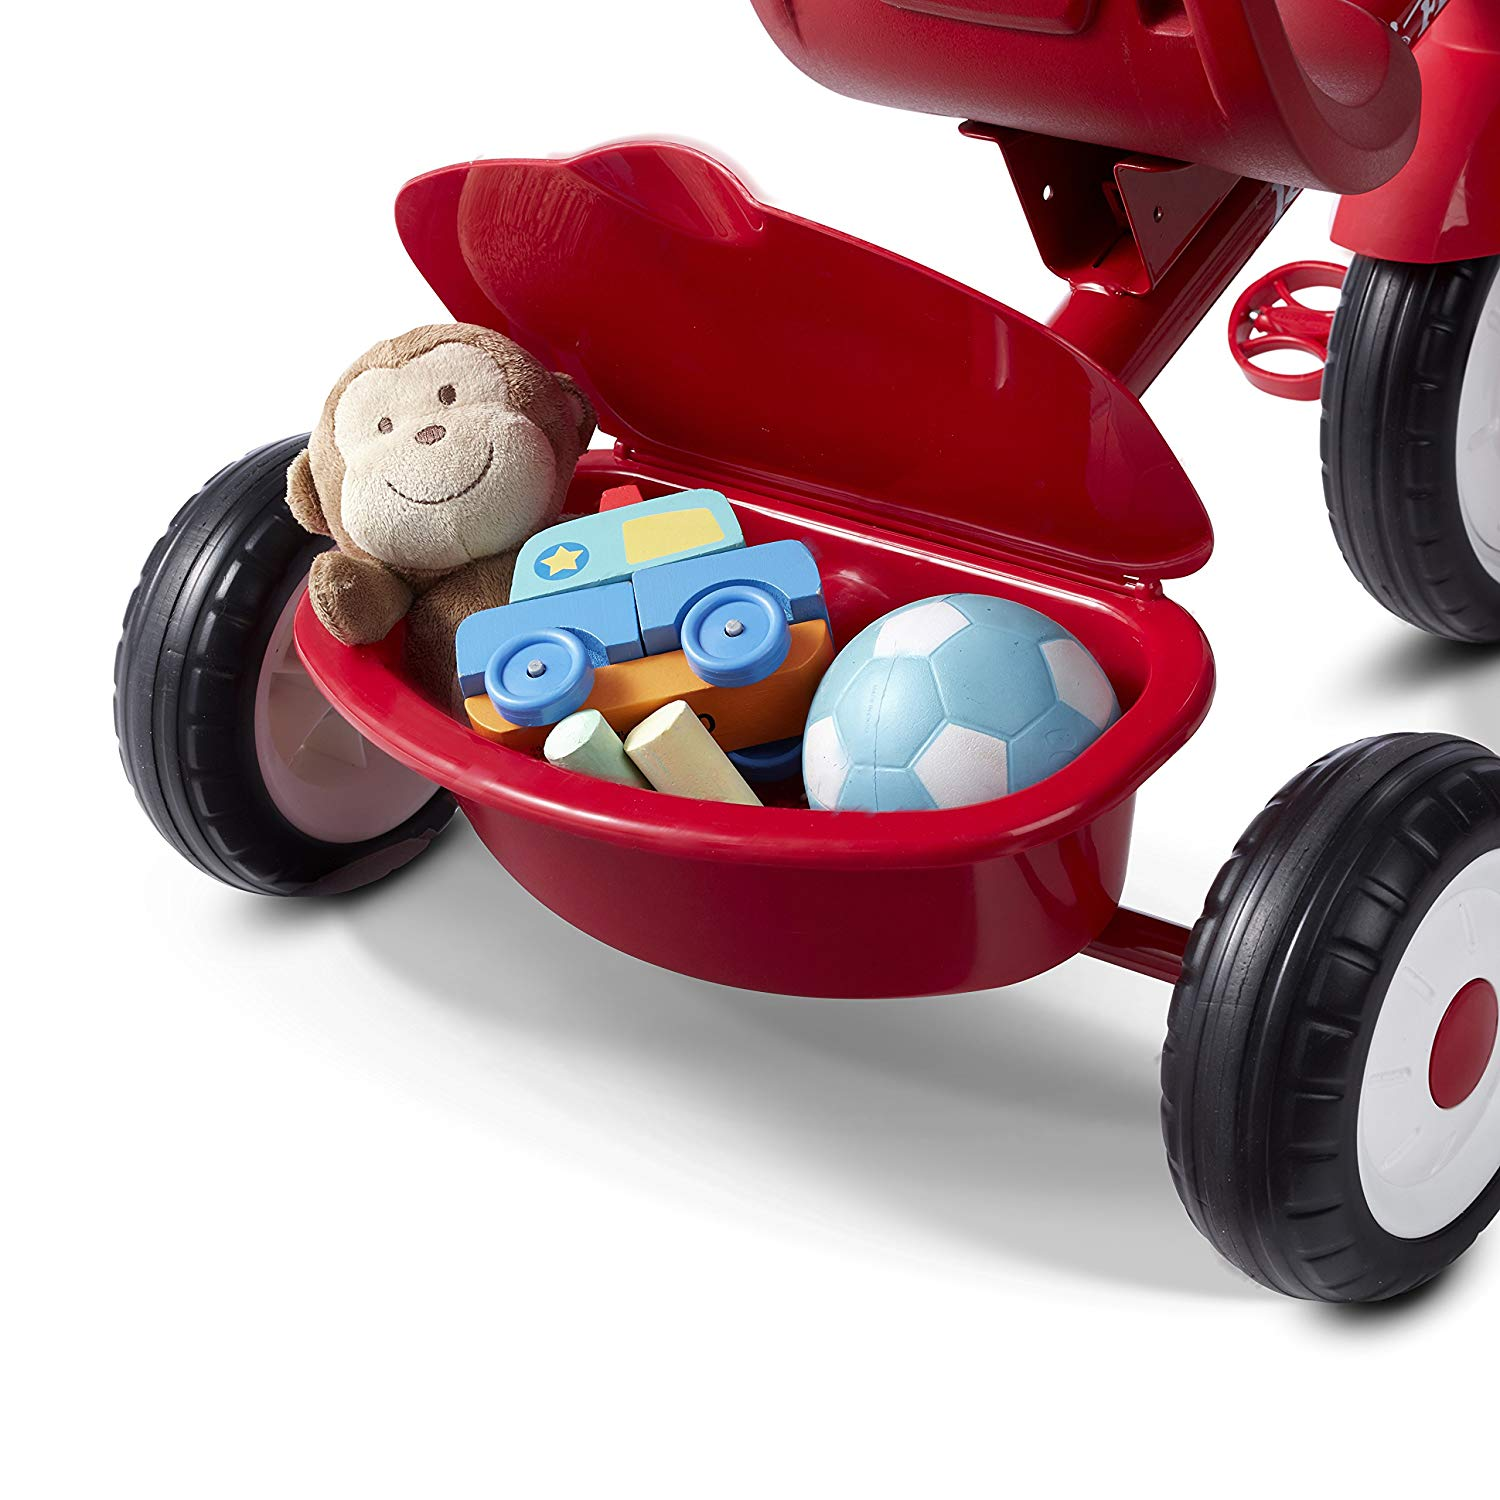 The Radio Flyer 4 In 1 Stroll N Trike comes with a storage compartment